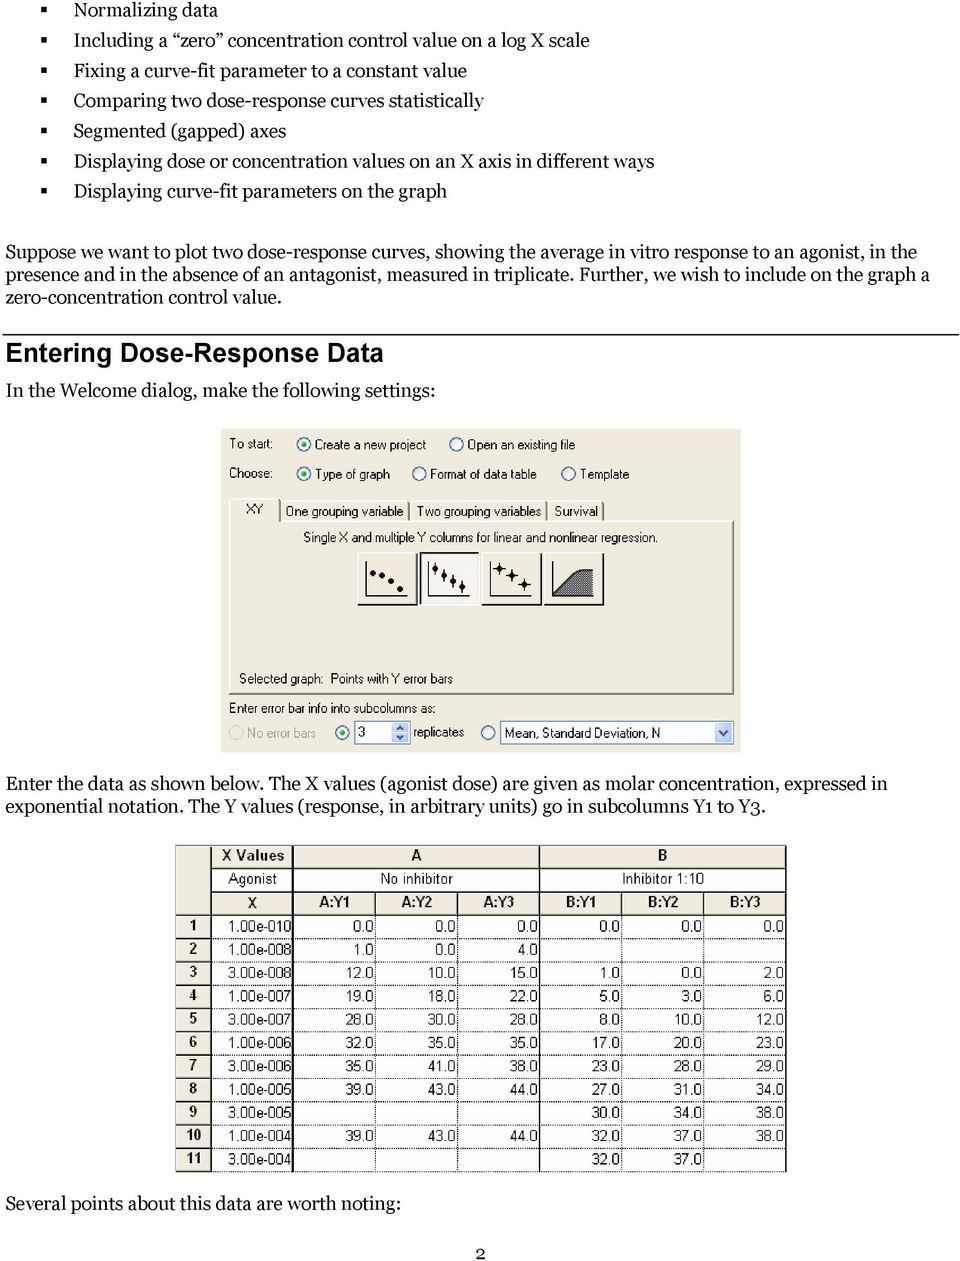 Analyzing Dose-Response Data 1 - PDF